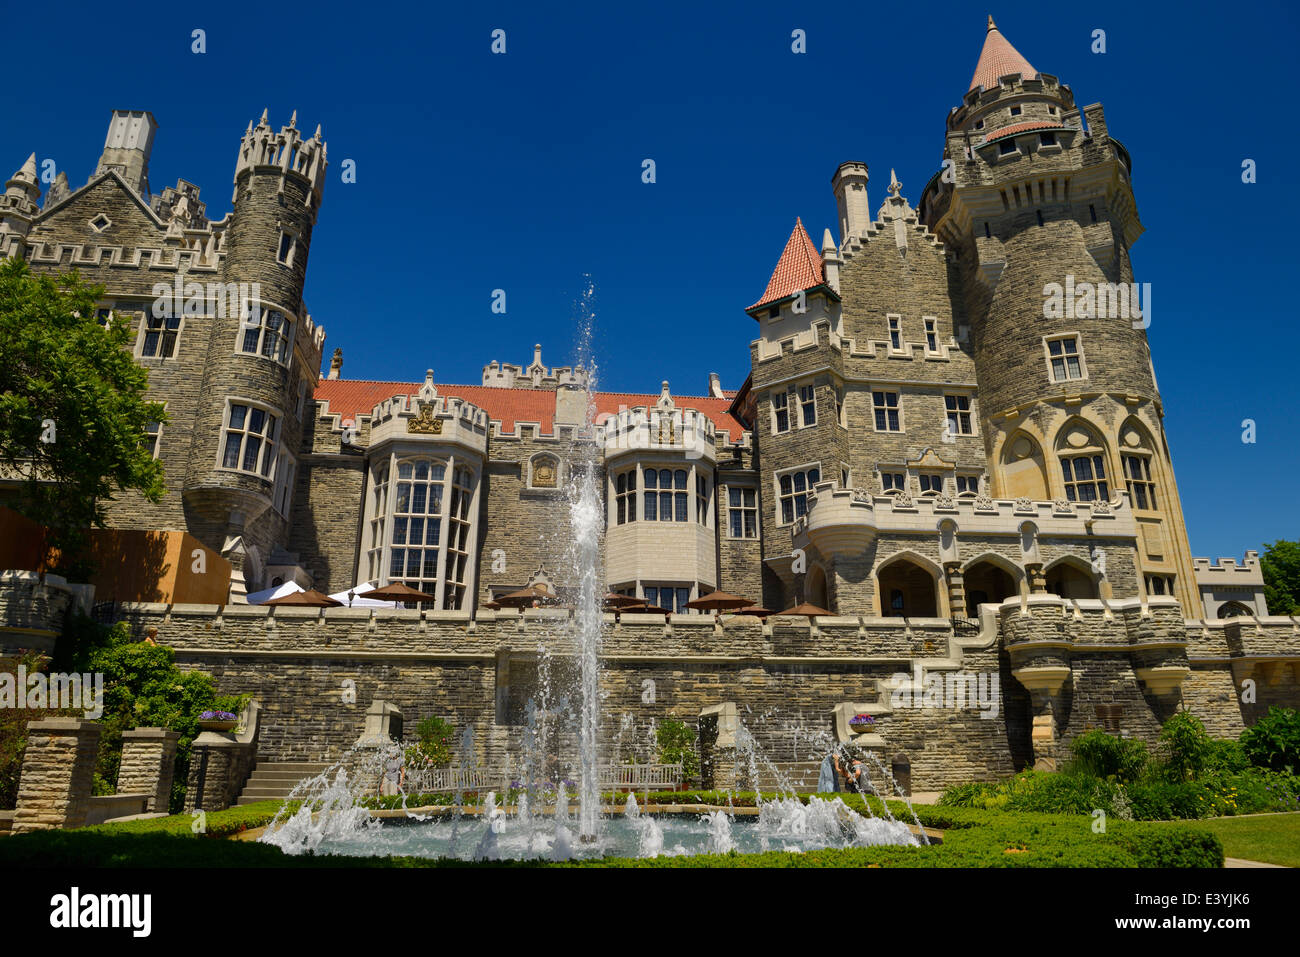 Gothic Revival Architecture Of Casa Loma Castle In Toronto